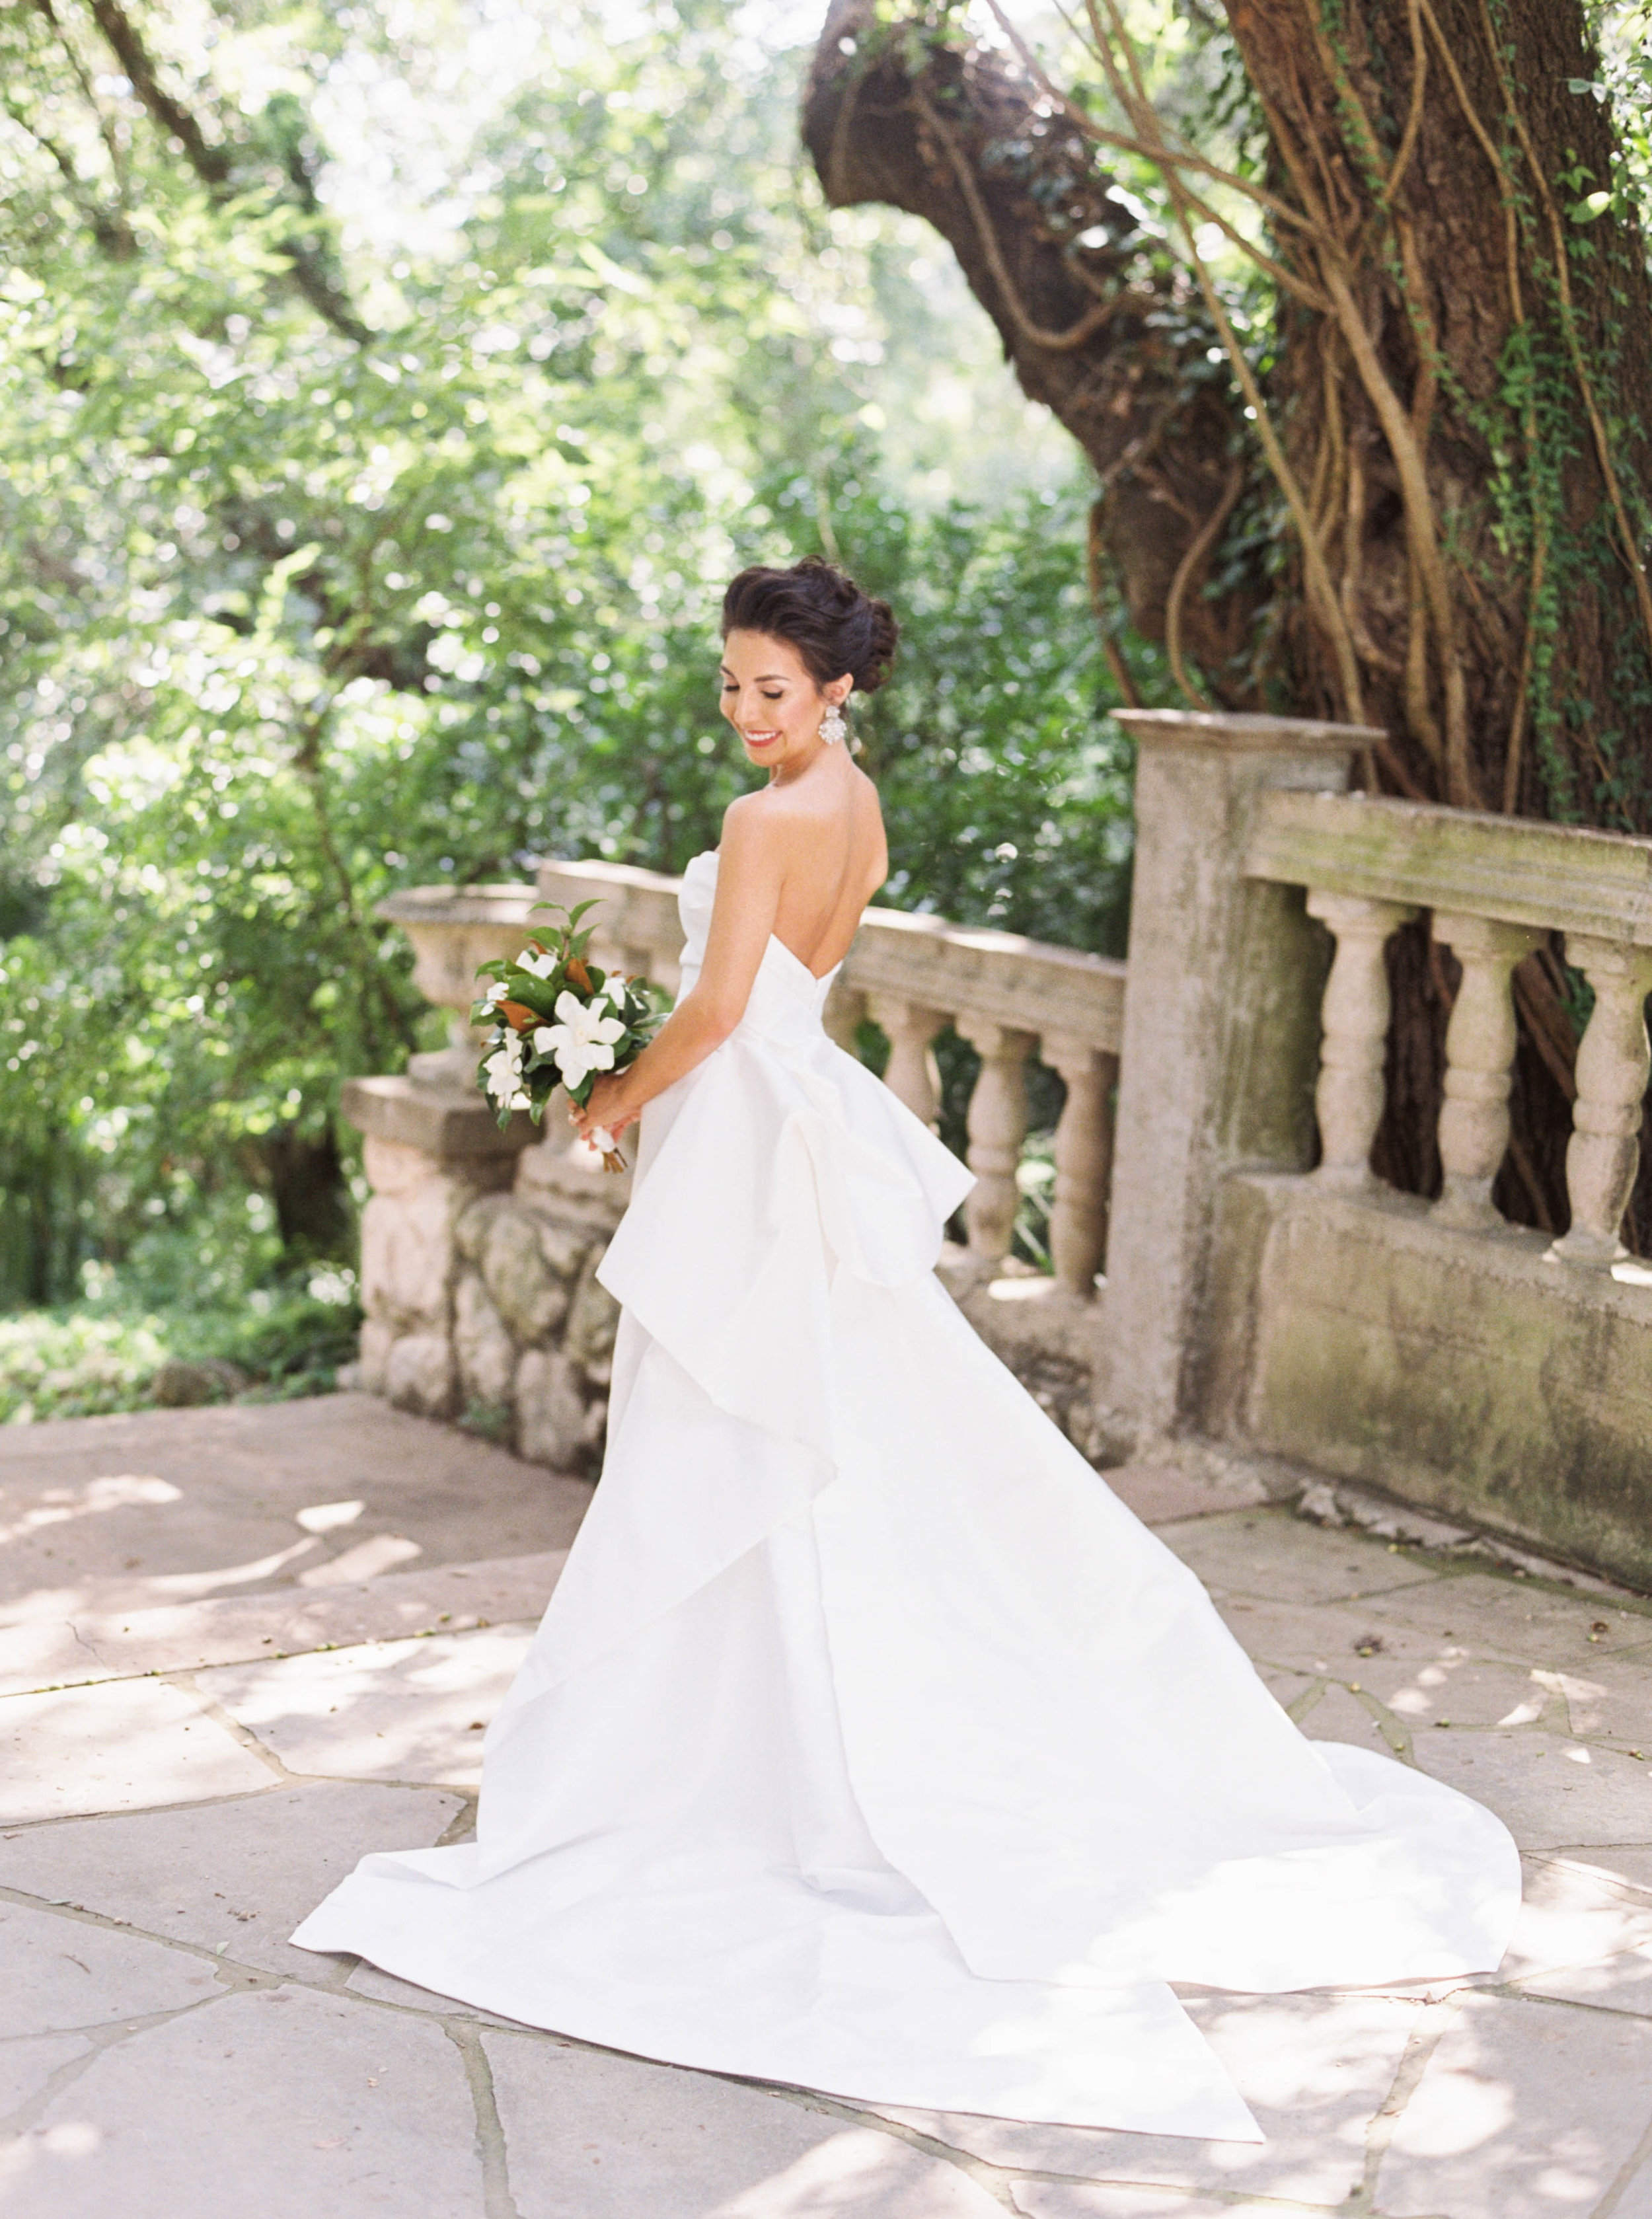 jenna-mcelroy-10-tips-for-gorgeous-bridal-portraits-3